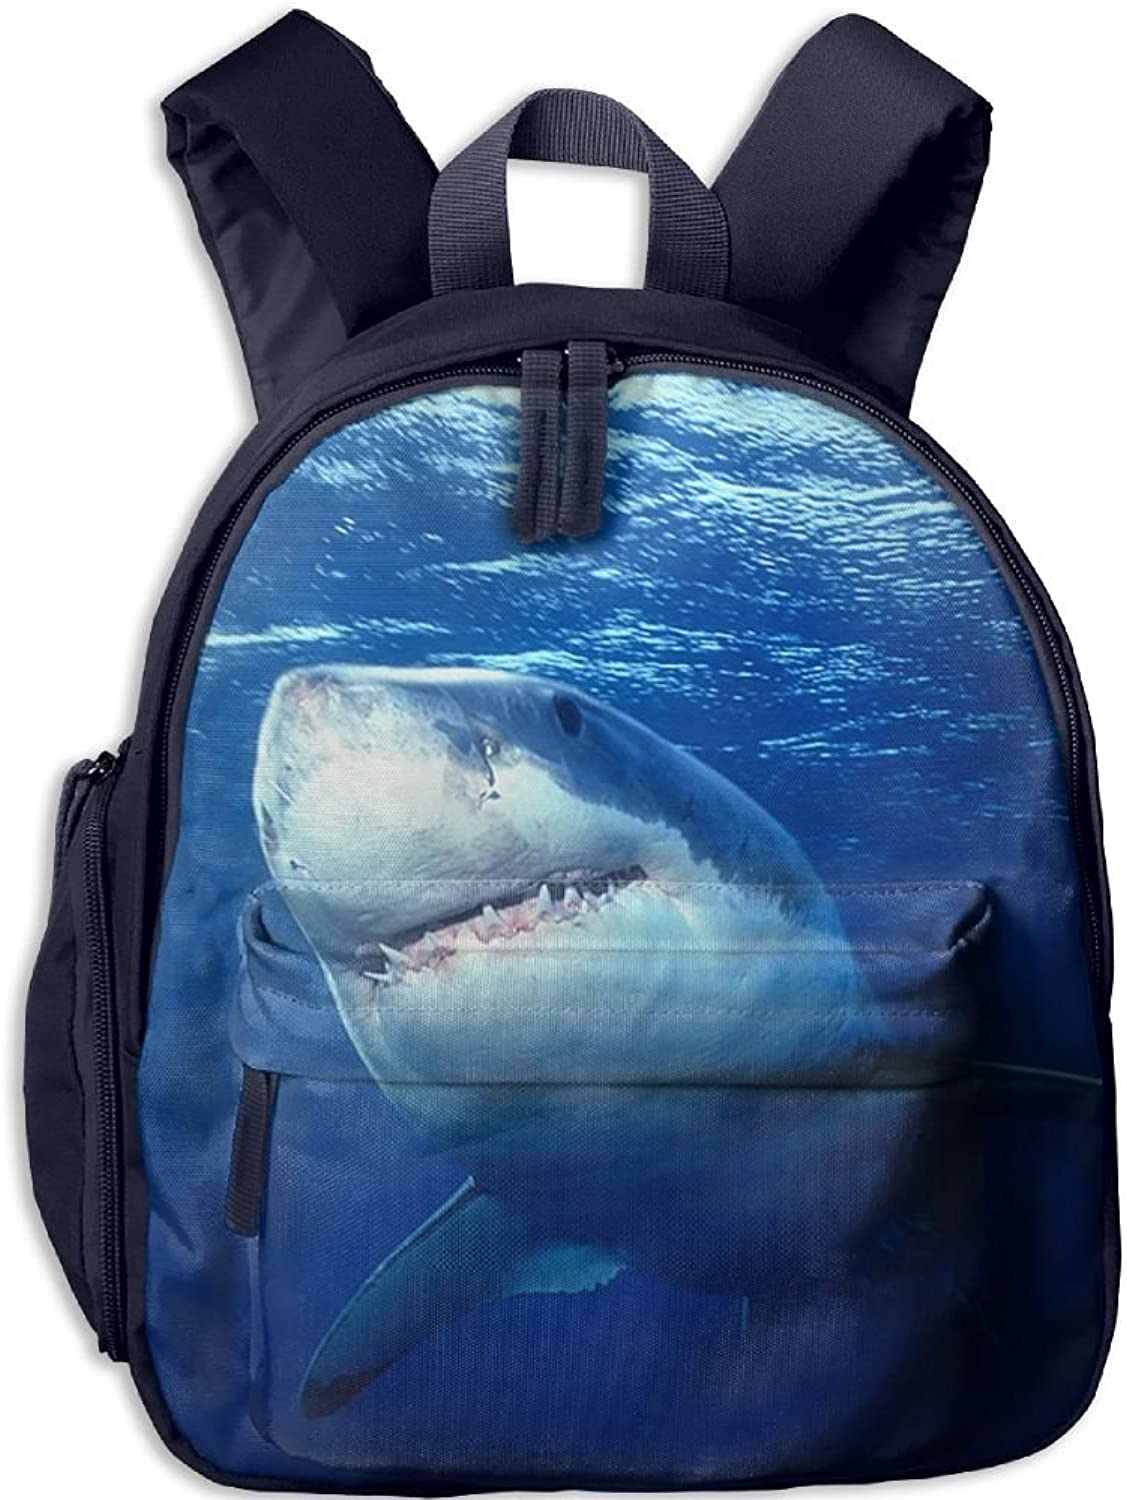 Pinta Terror Shark Cub Cool School Book Bag Backpacks for Girl's Boy's